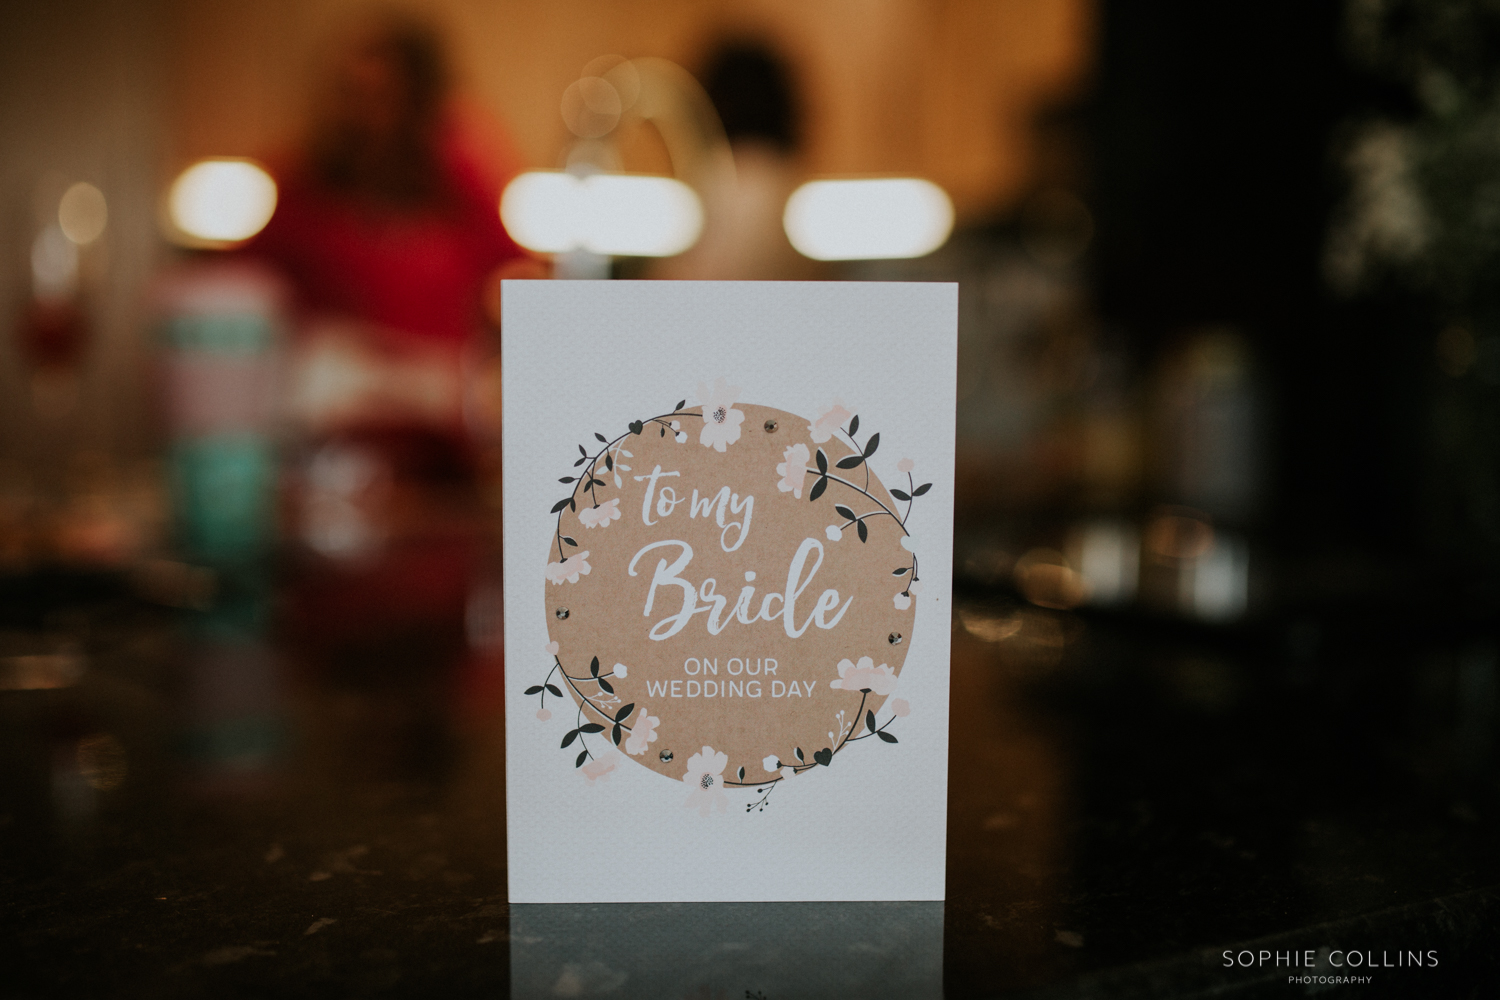 card from the groom